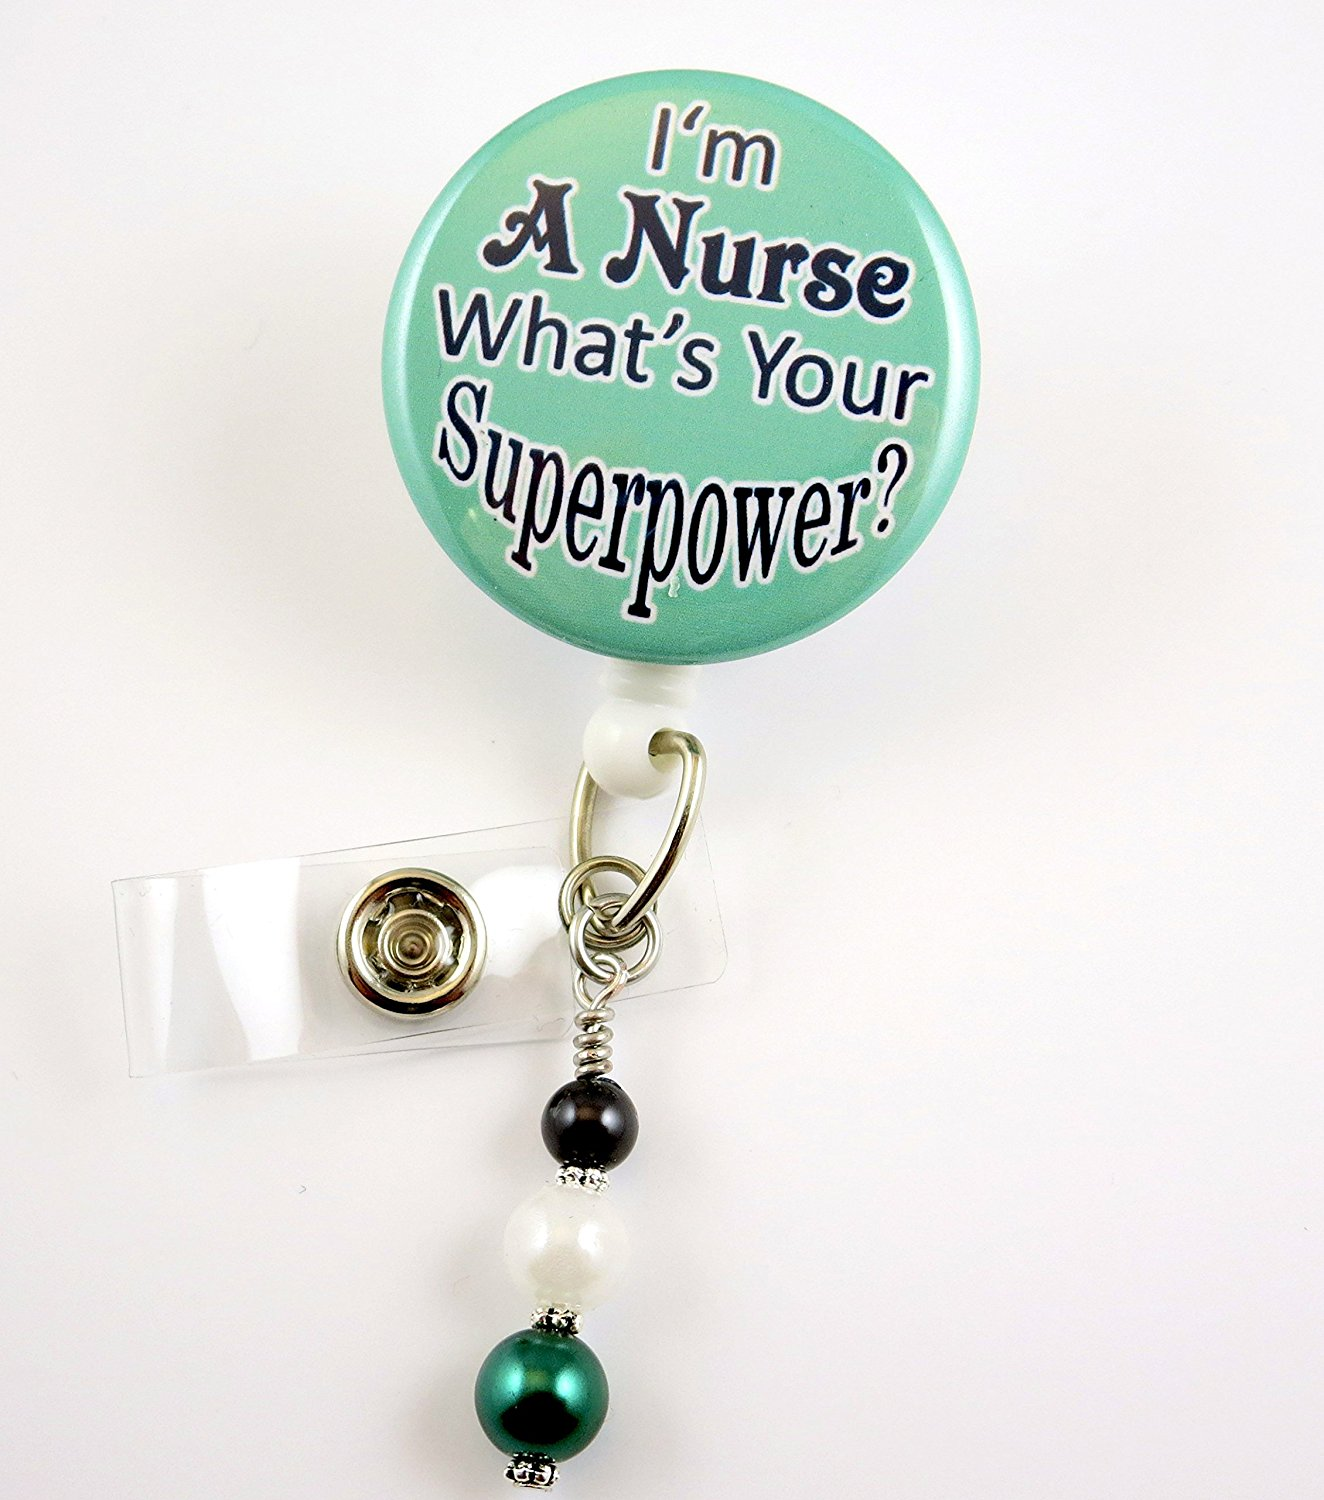 I'm a Nurse What's your Superpower - Nurse Badge Reel - Retractable ID Badge Holder - Nurse Badge - Badge Clip - Badge Reels - Pediatric - RN - Name Badge Holder